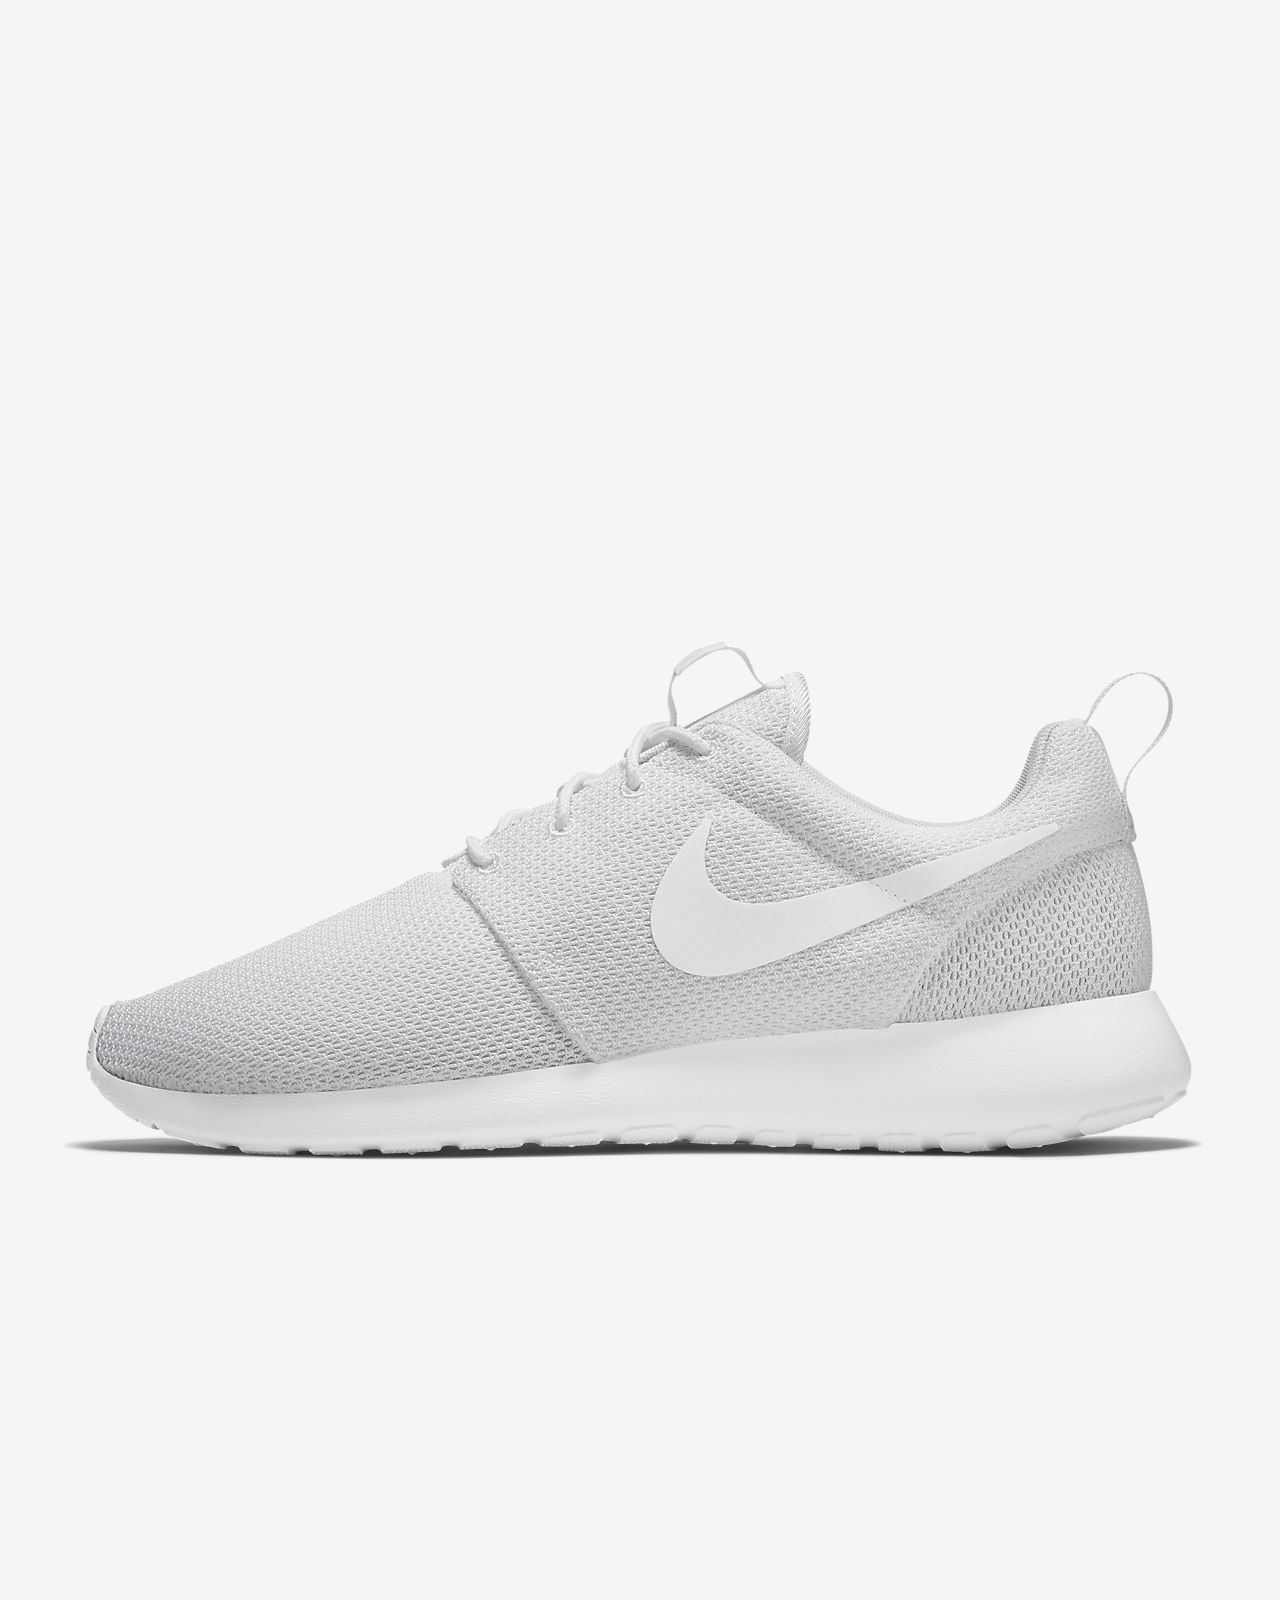 the latest ebf22 bd38d Nike Roshe One Men's Shoe